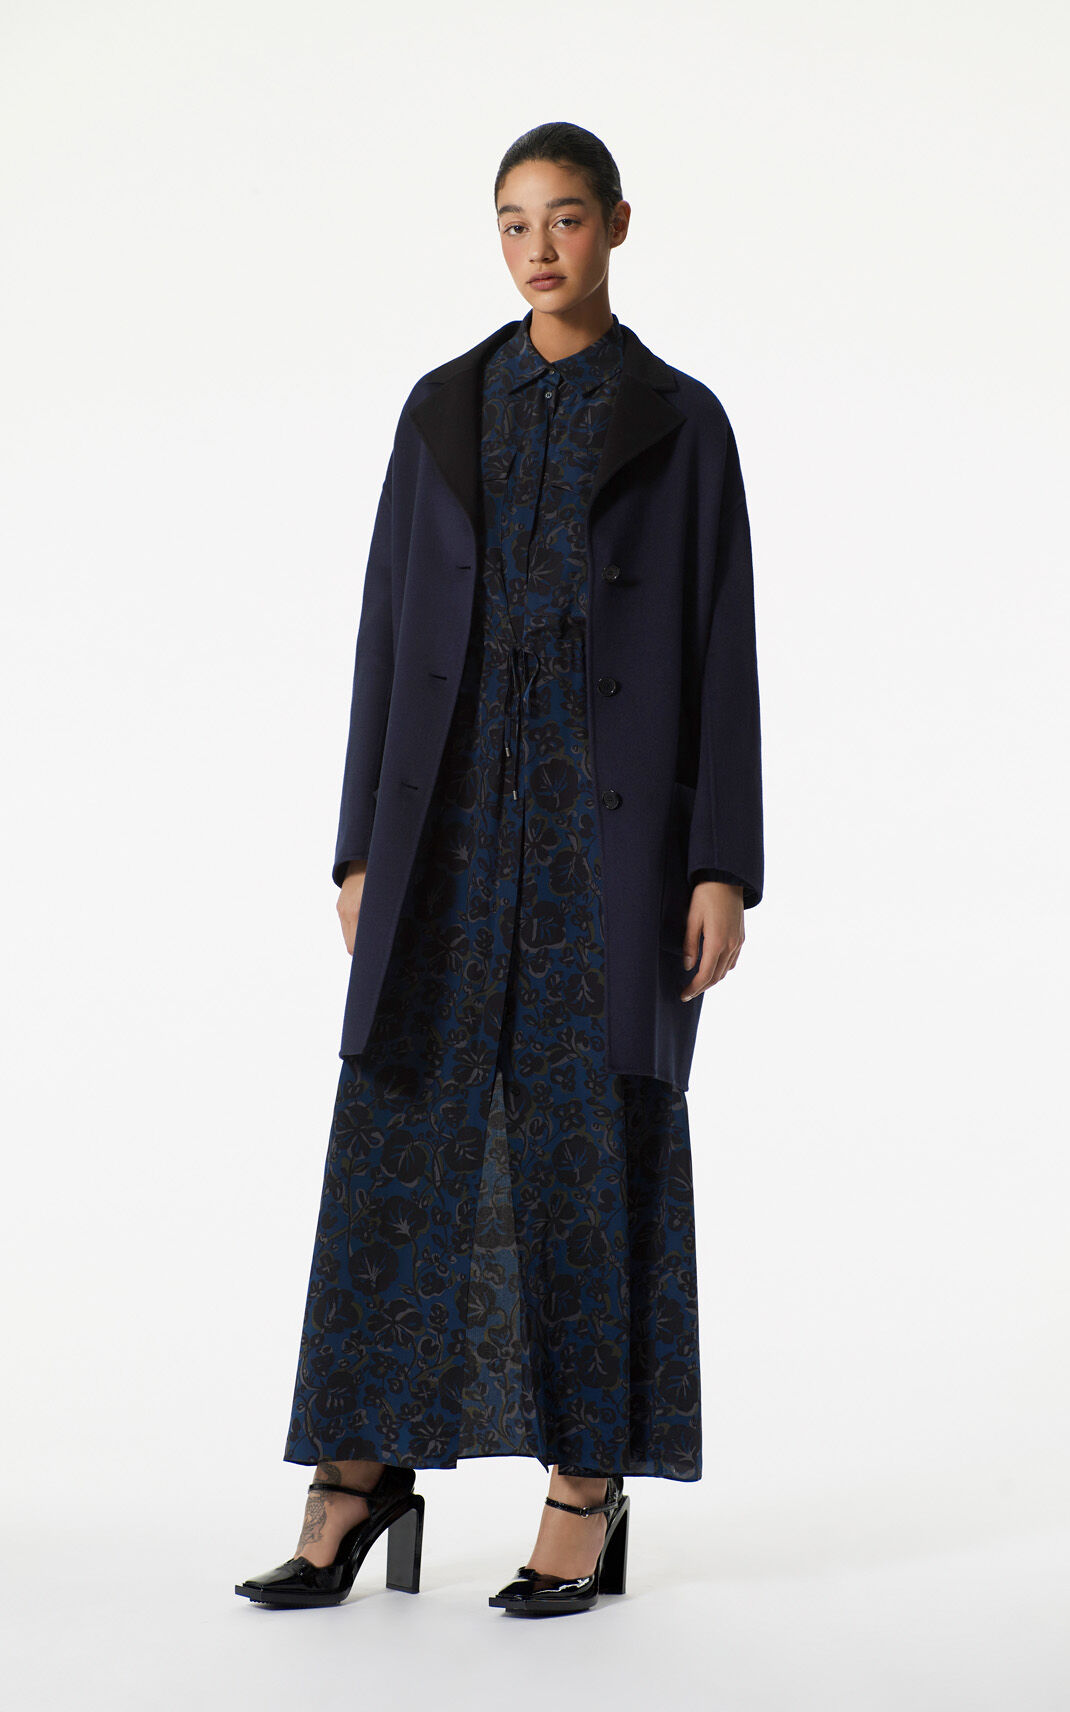 NAVY BLUE Wool Coat for women KENZO